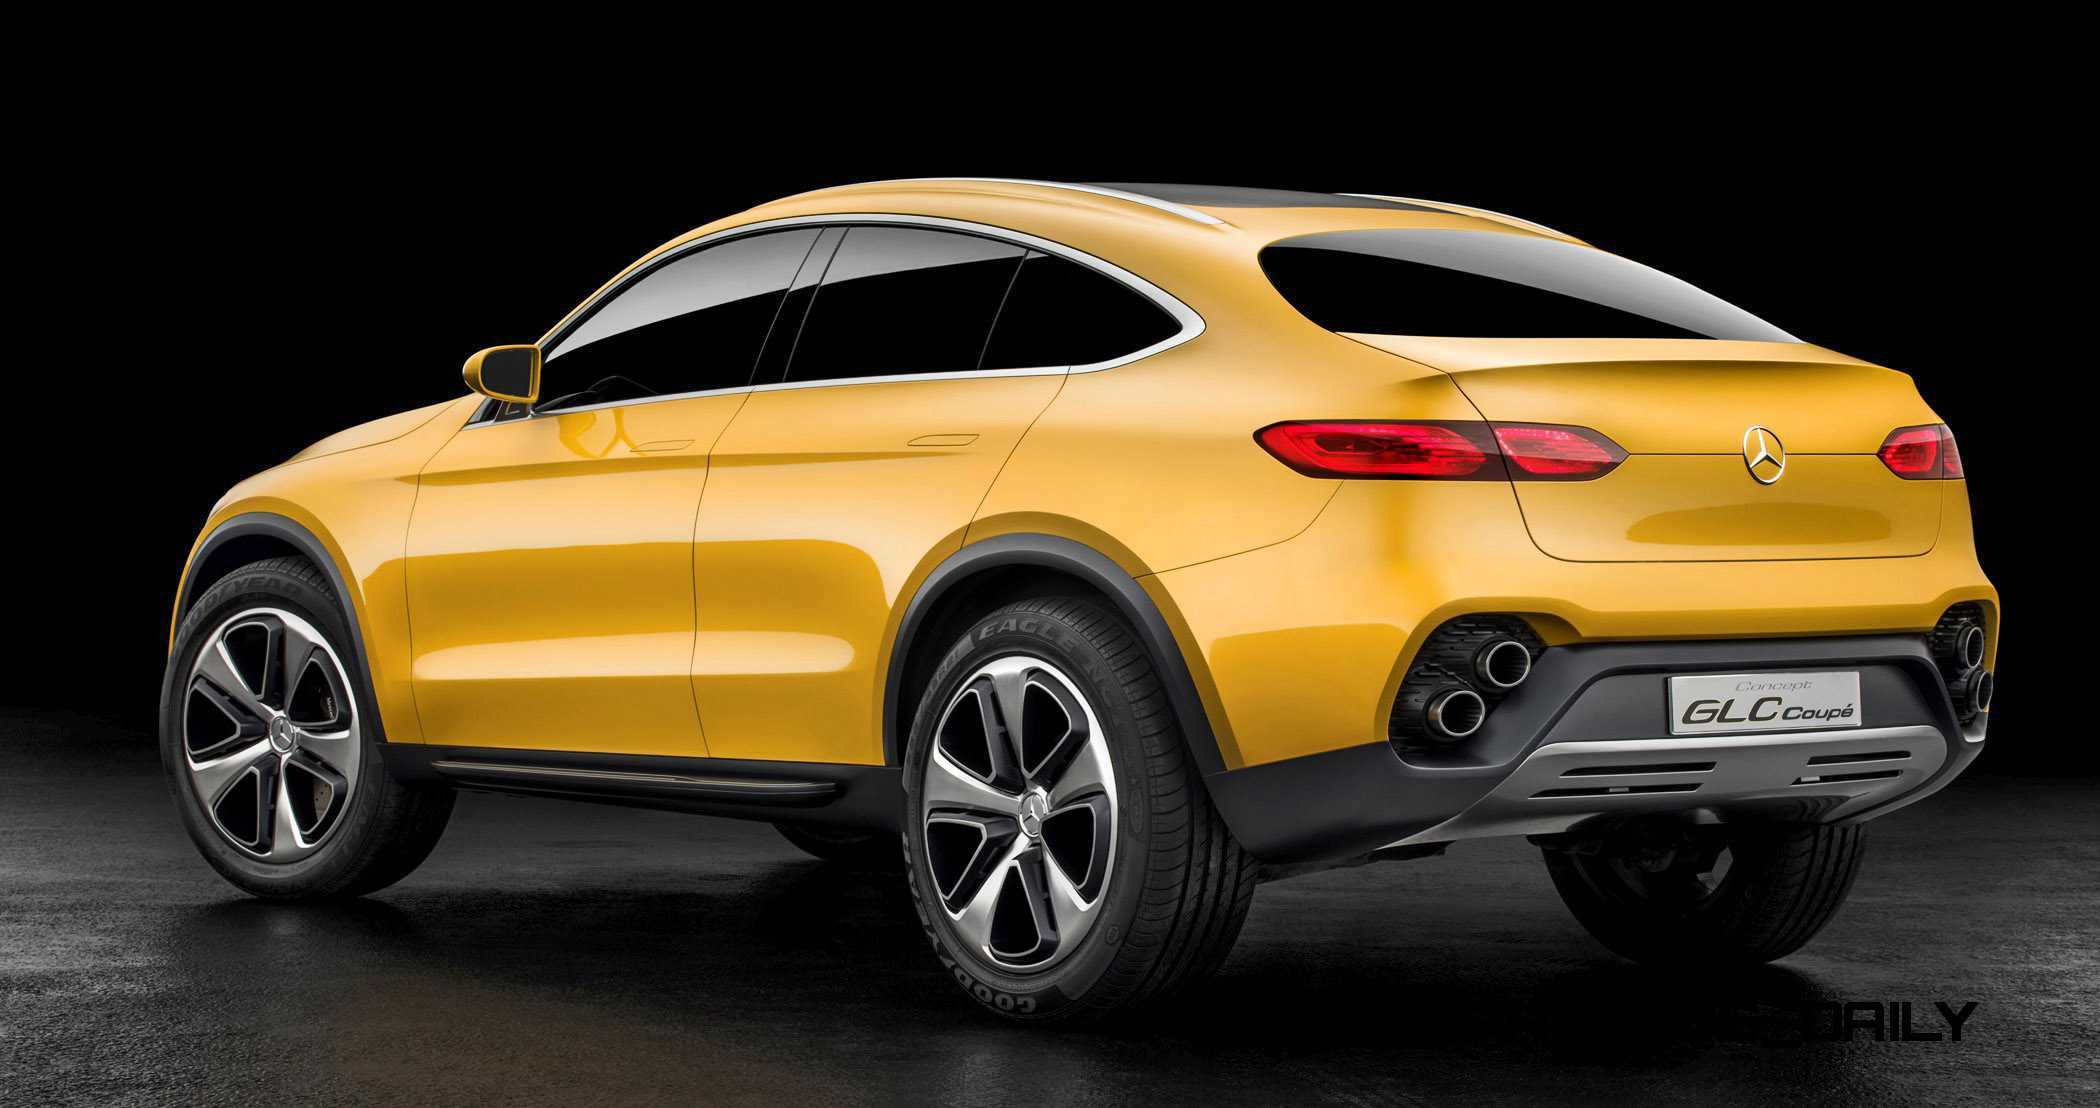 2015 mercedes benz glc coupe concept for Mercedes benz glc